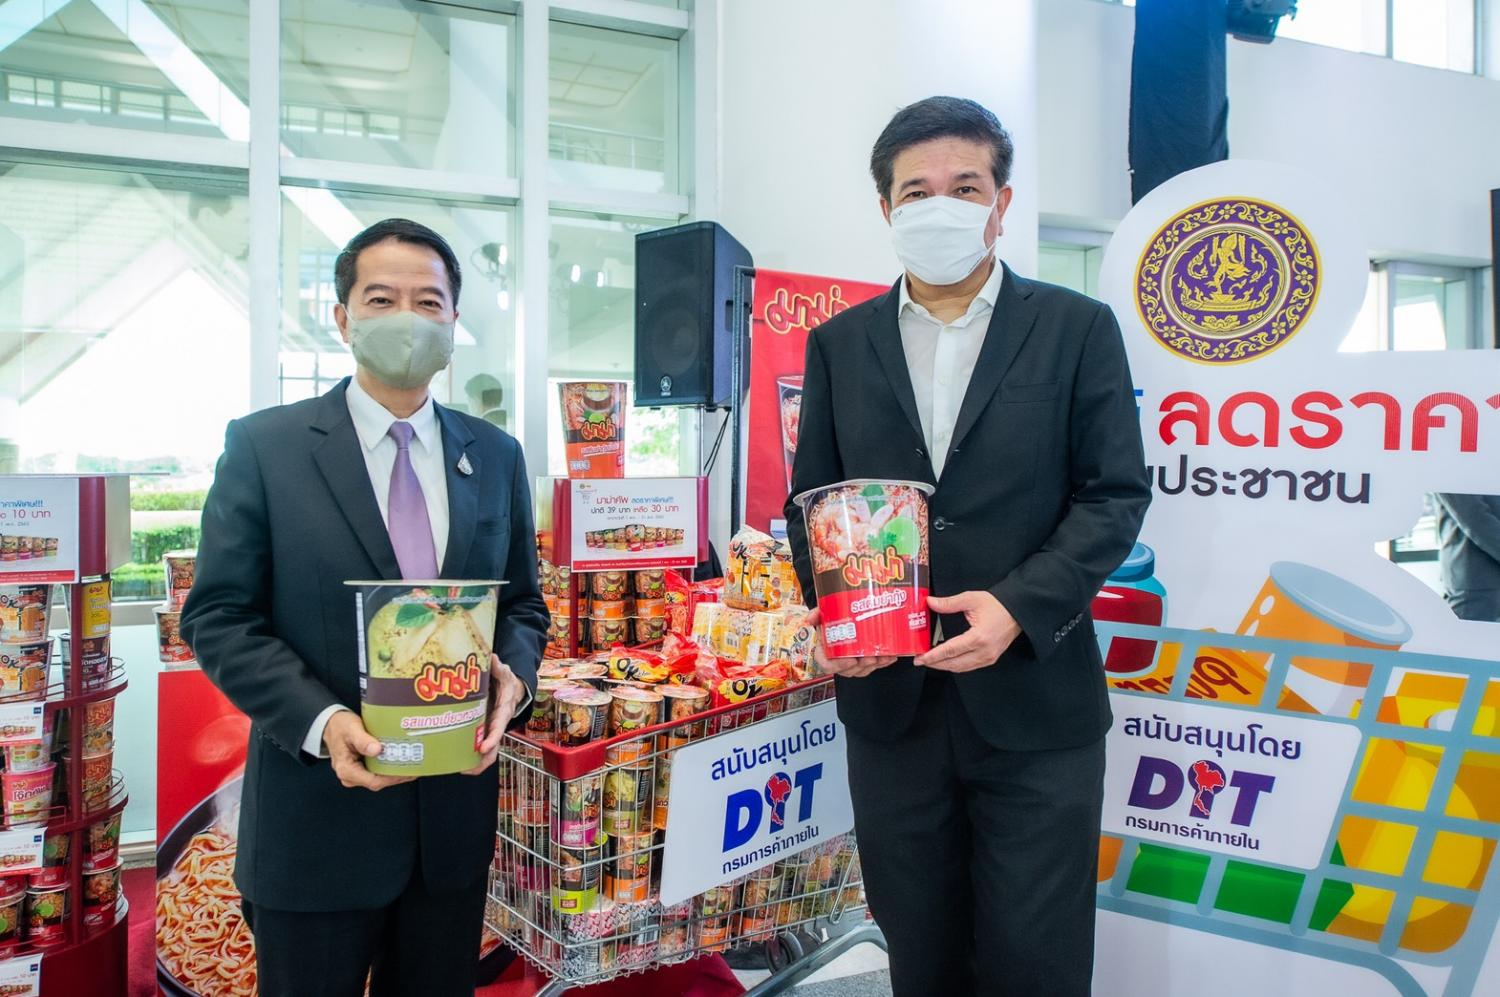 Commerce permanent secretary Boonyarit Kalayanamit (left) with Vathit Chokwatana, president of Saha Pathanapibul Plc, the distributor of Mama instant noodles.